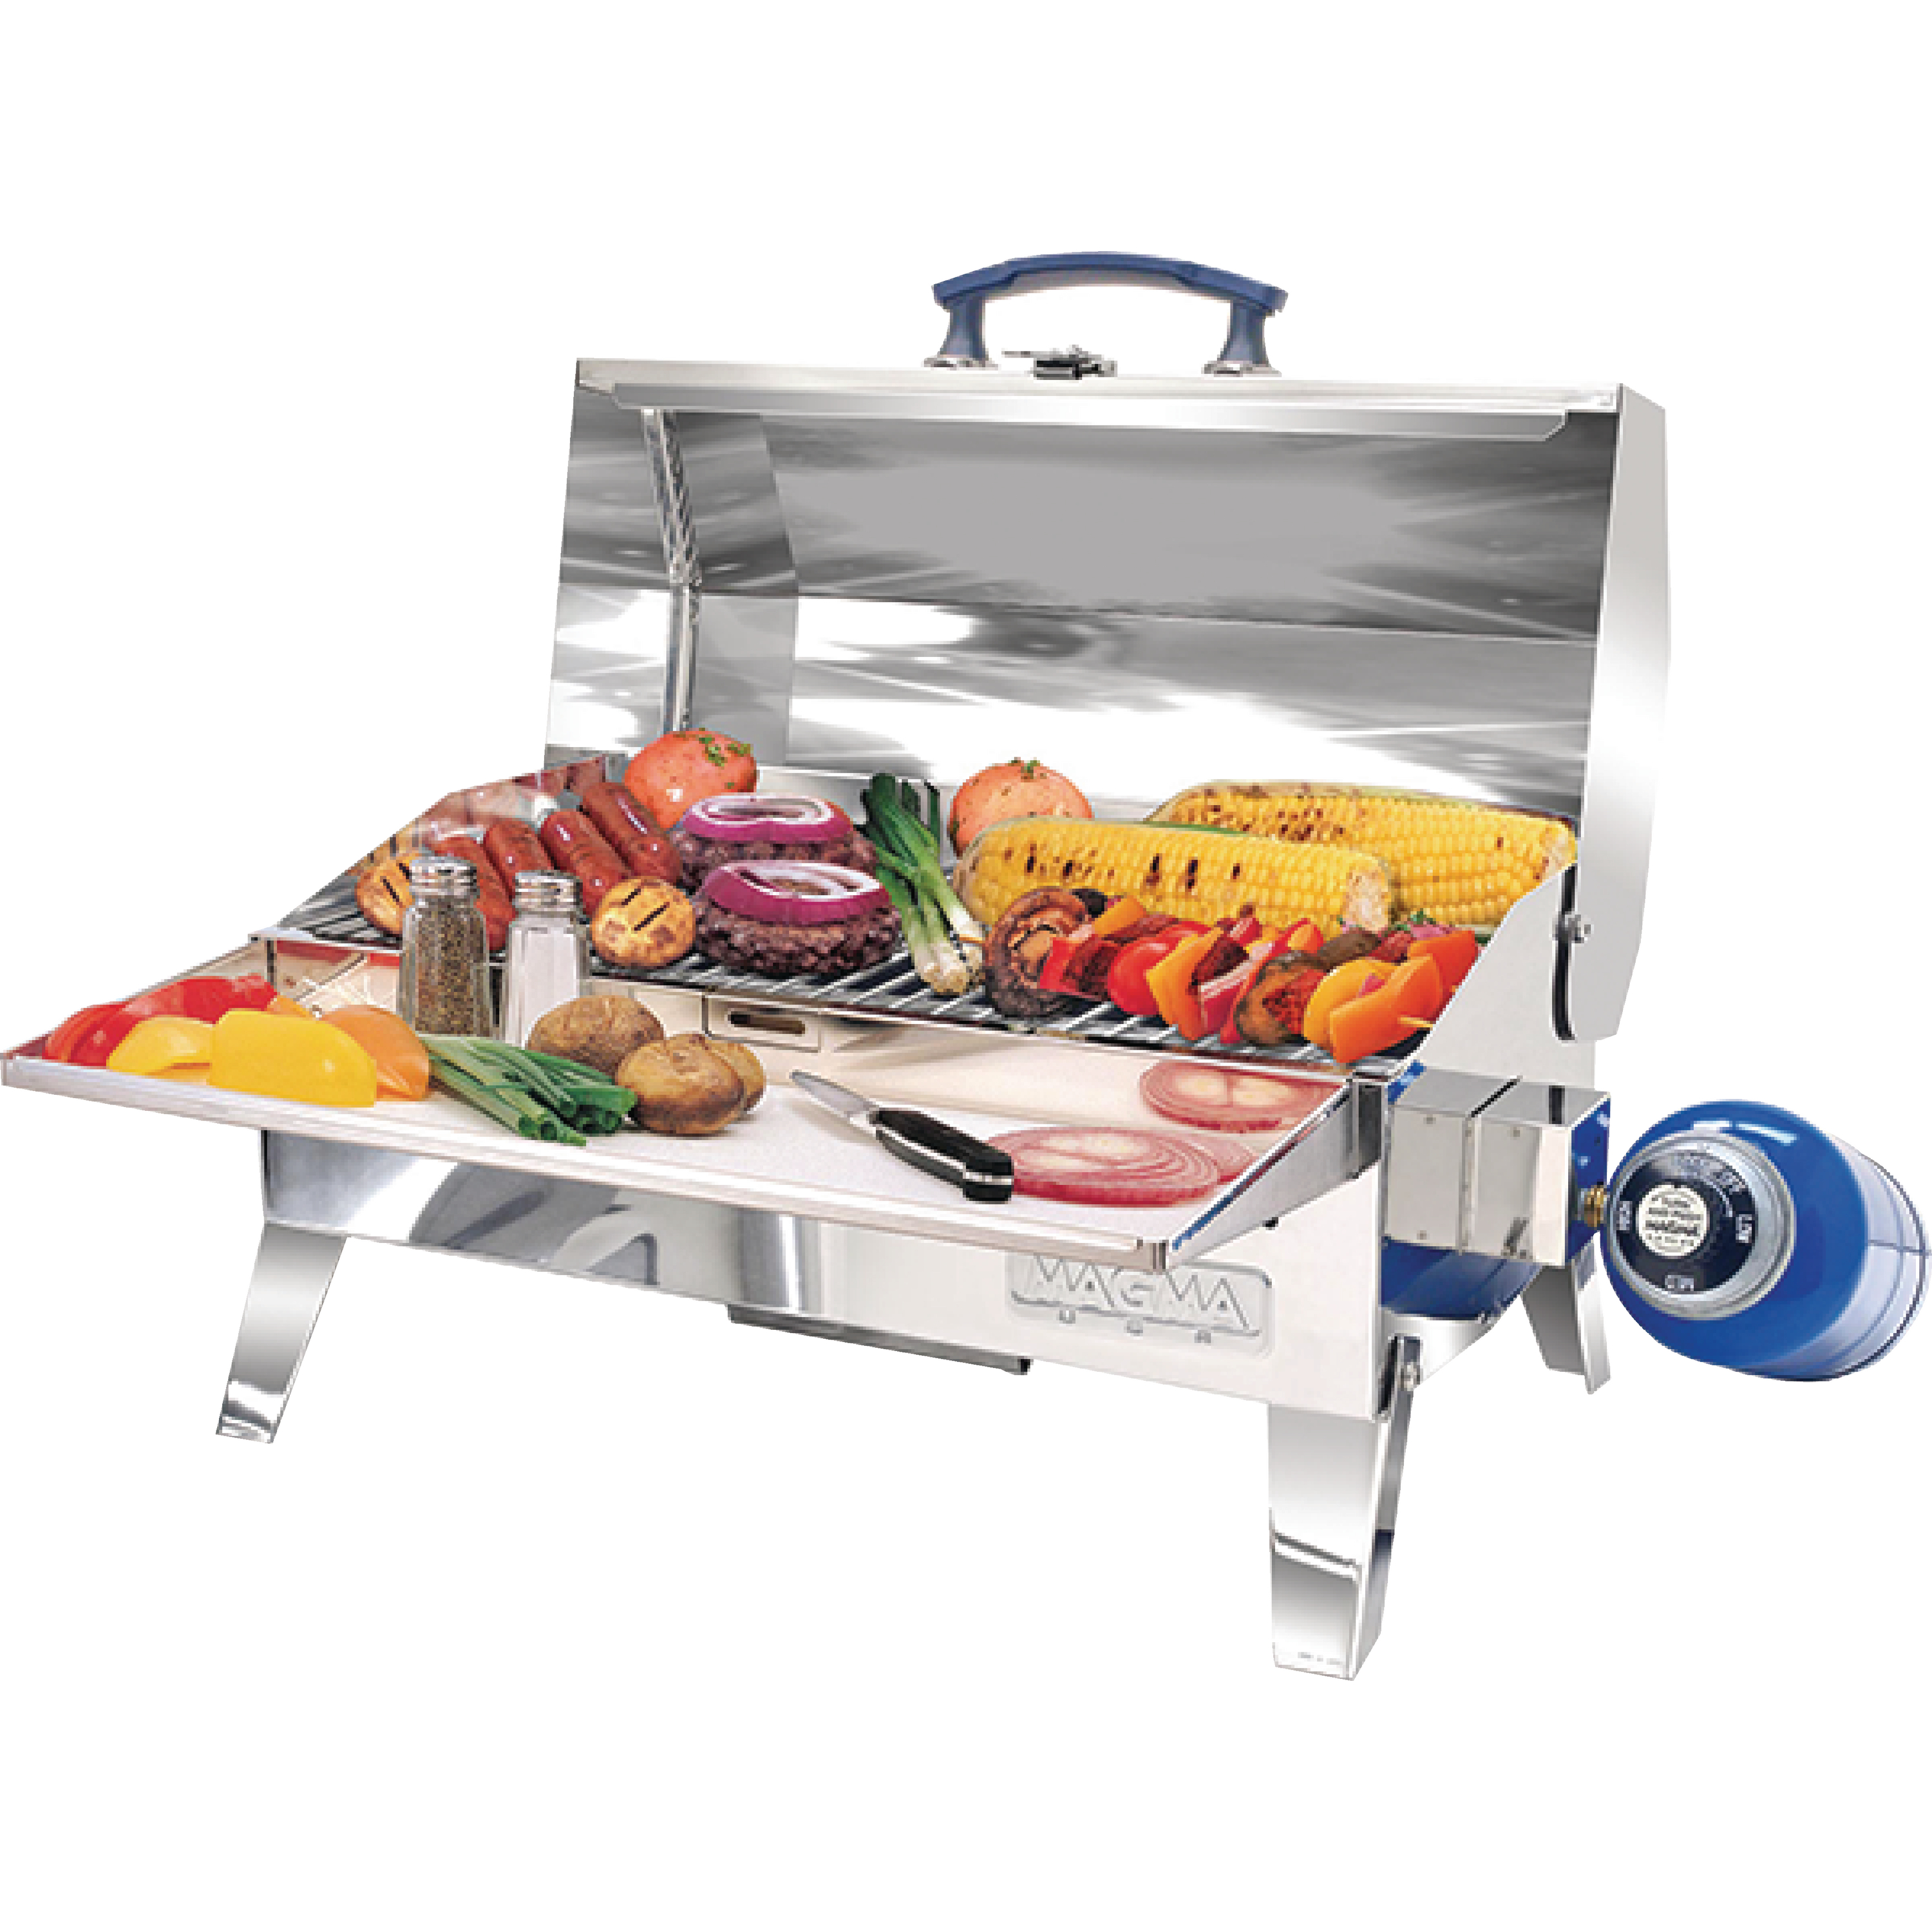 """Magma A10703 Cabo Adventurer Marine Series 9"""" x 12"""" Gas Grill"""